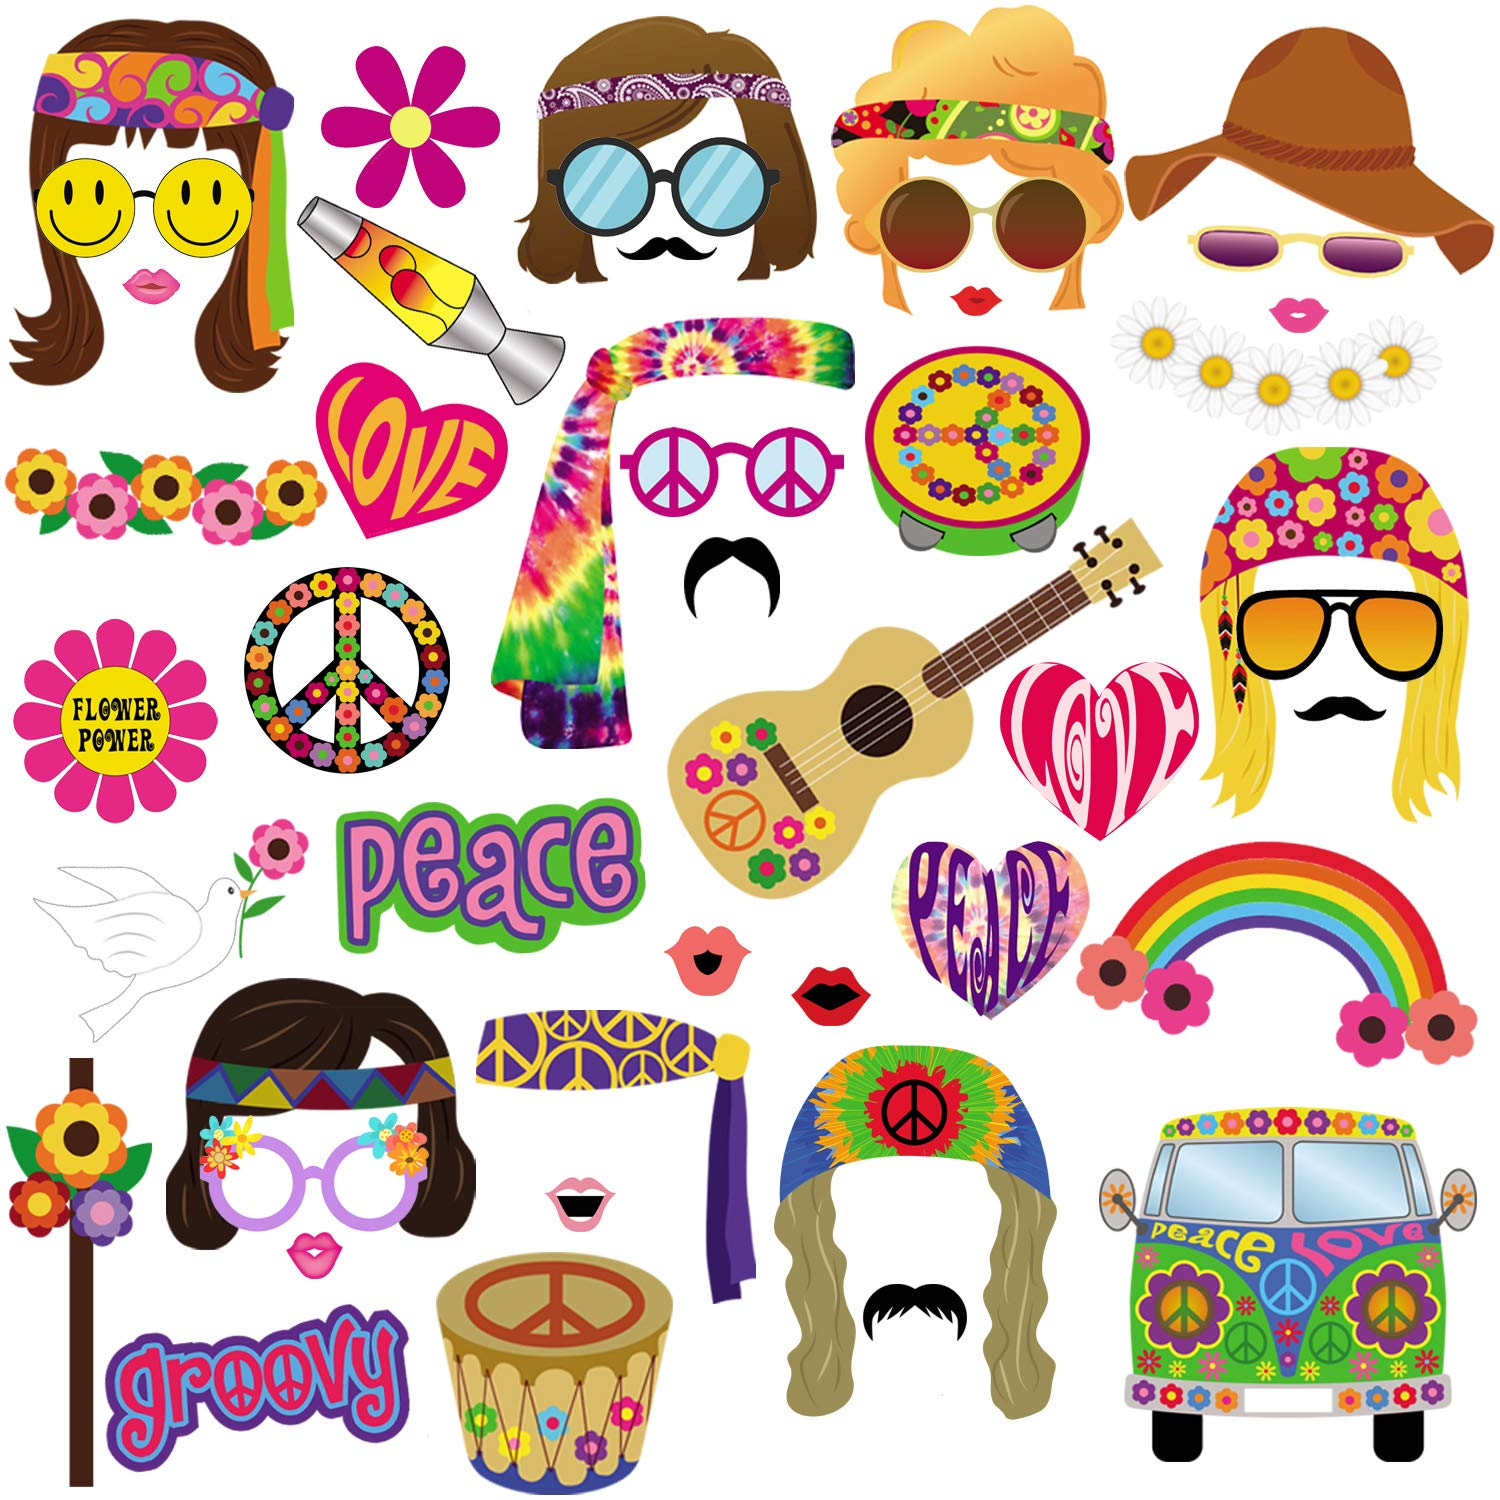 60s Photo Booth Props, 45pcs BizoeRade 60s Party Photo Booth, 1960s Theme Hippie Party Decorations, 60's Flower Power Photo Props for Groovy Party Woodstock Party